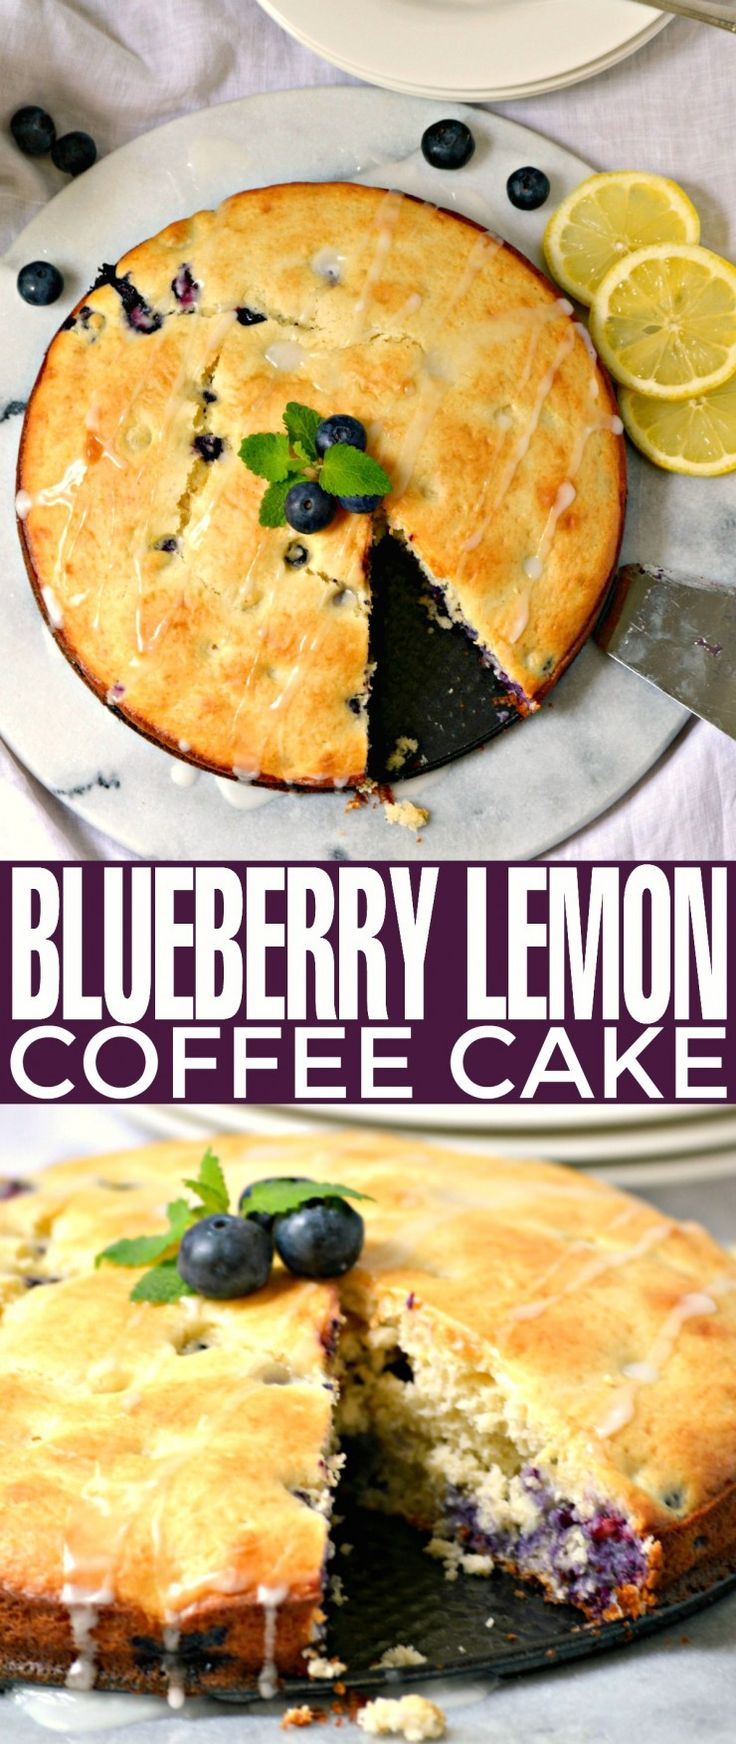 Sour cream coffee cake the frugal chef - Best 25 Bisquick Coffee Cake Recipe Ideas On Pinterest Bisquick Blueberry Muffins Simple Coffee Cake Recipe And Cake In Mug